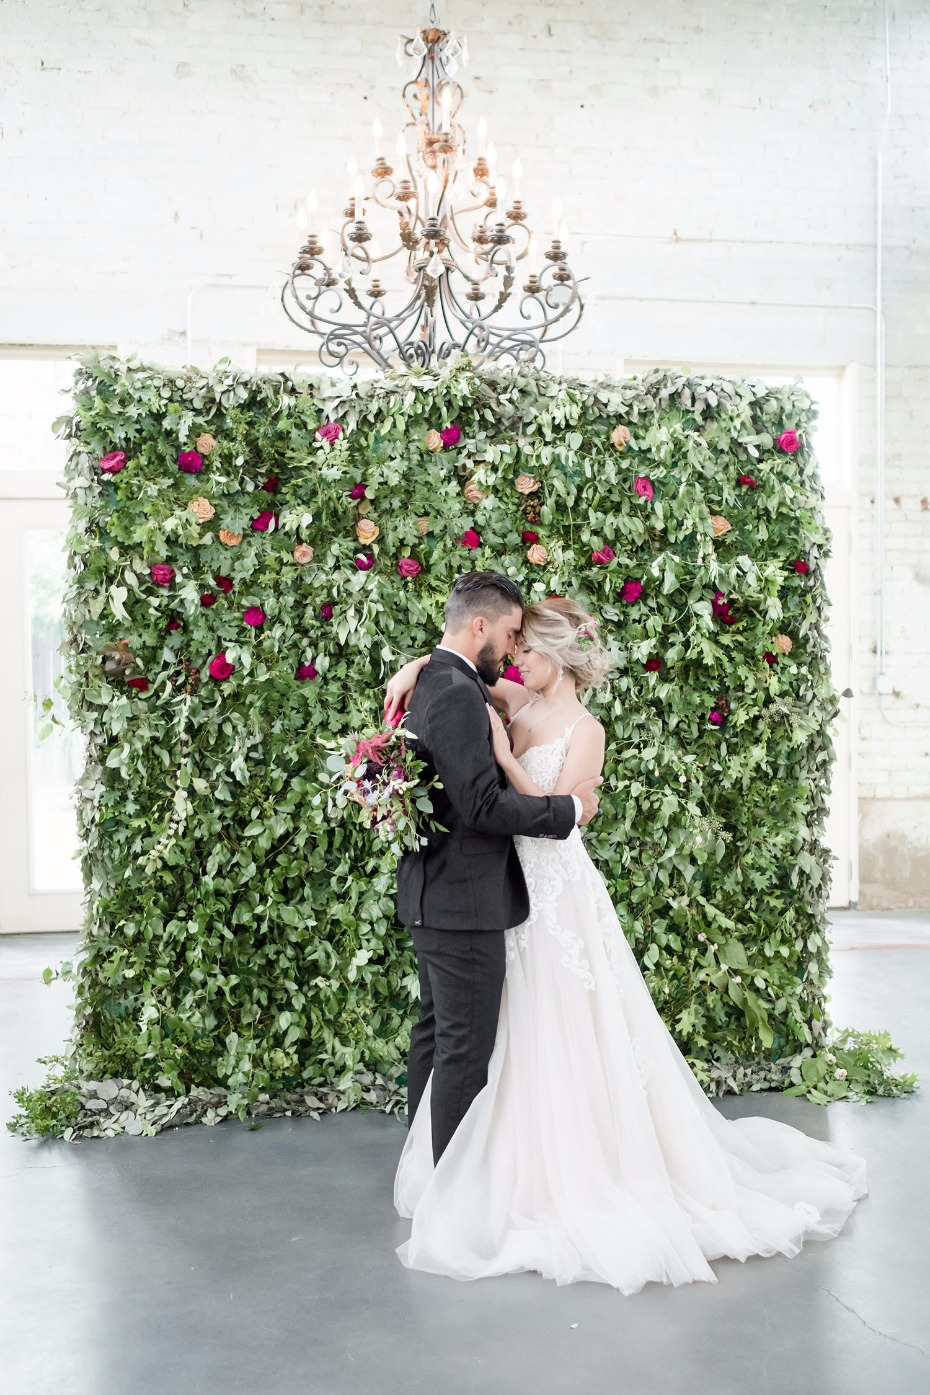 elegant rose and greenery backdrop